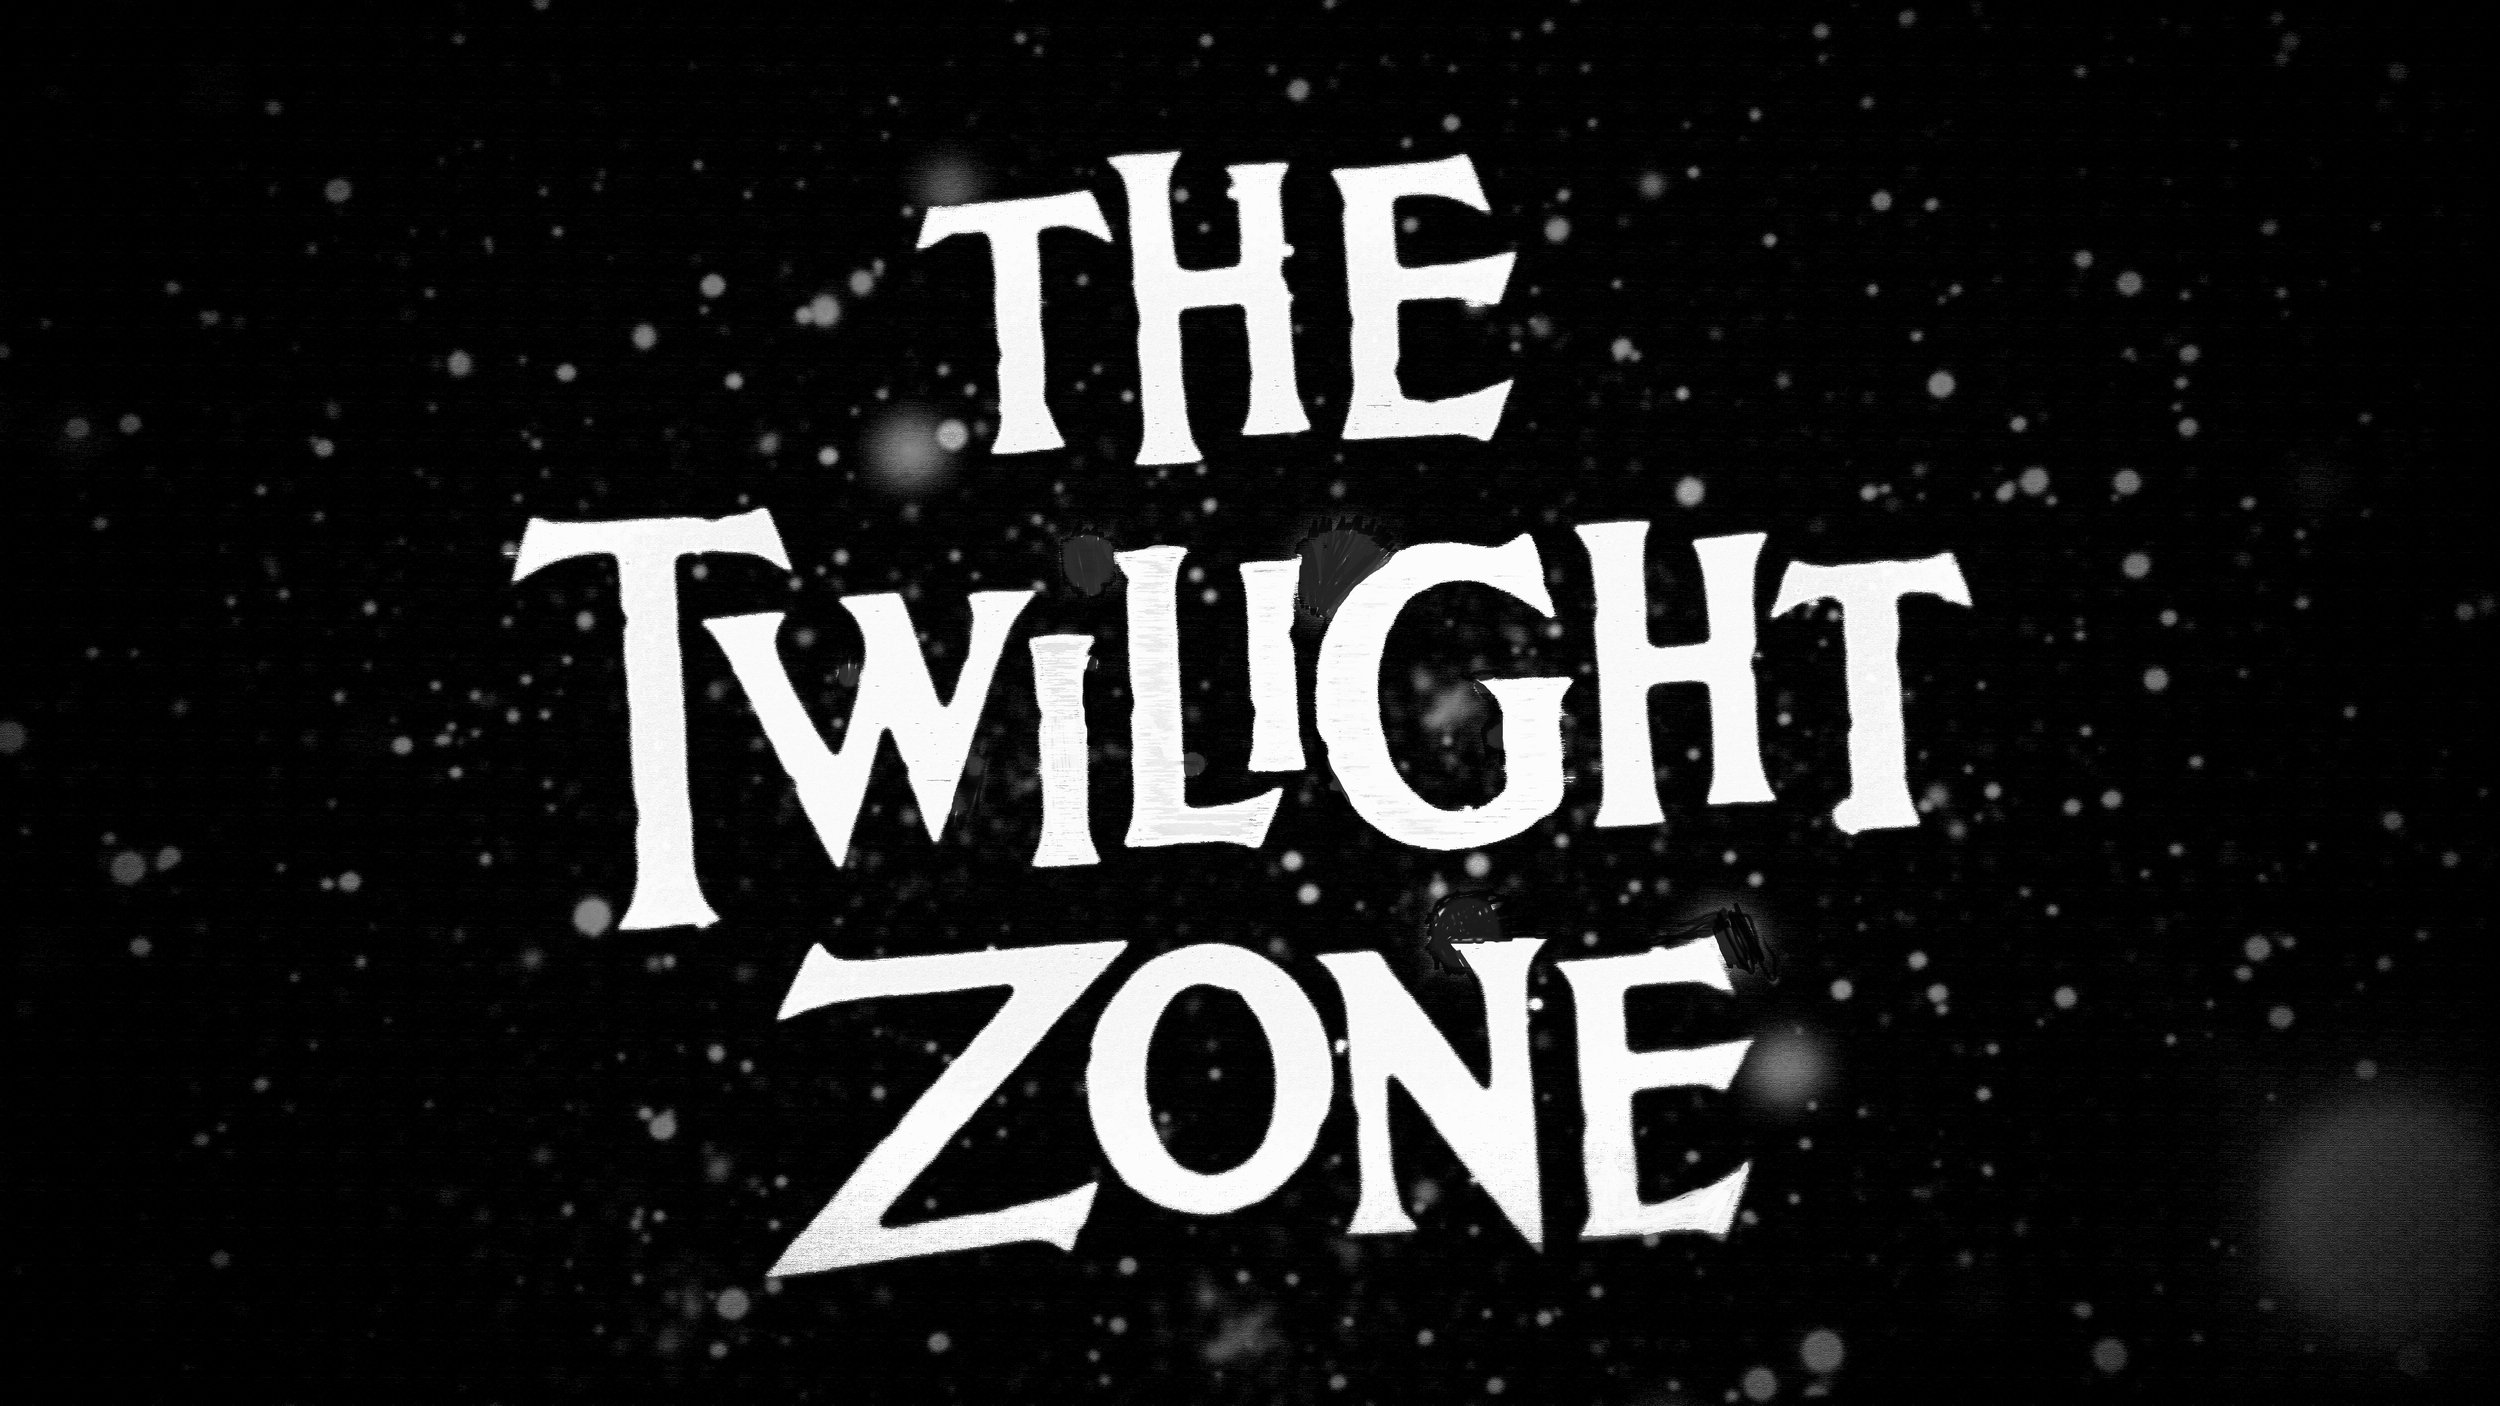 Twilight Zone introduction with music plays.